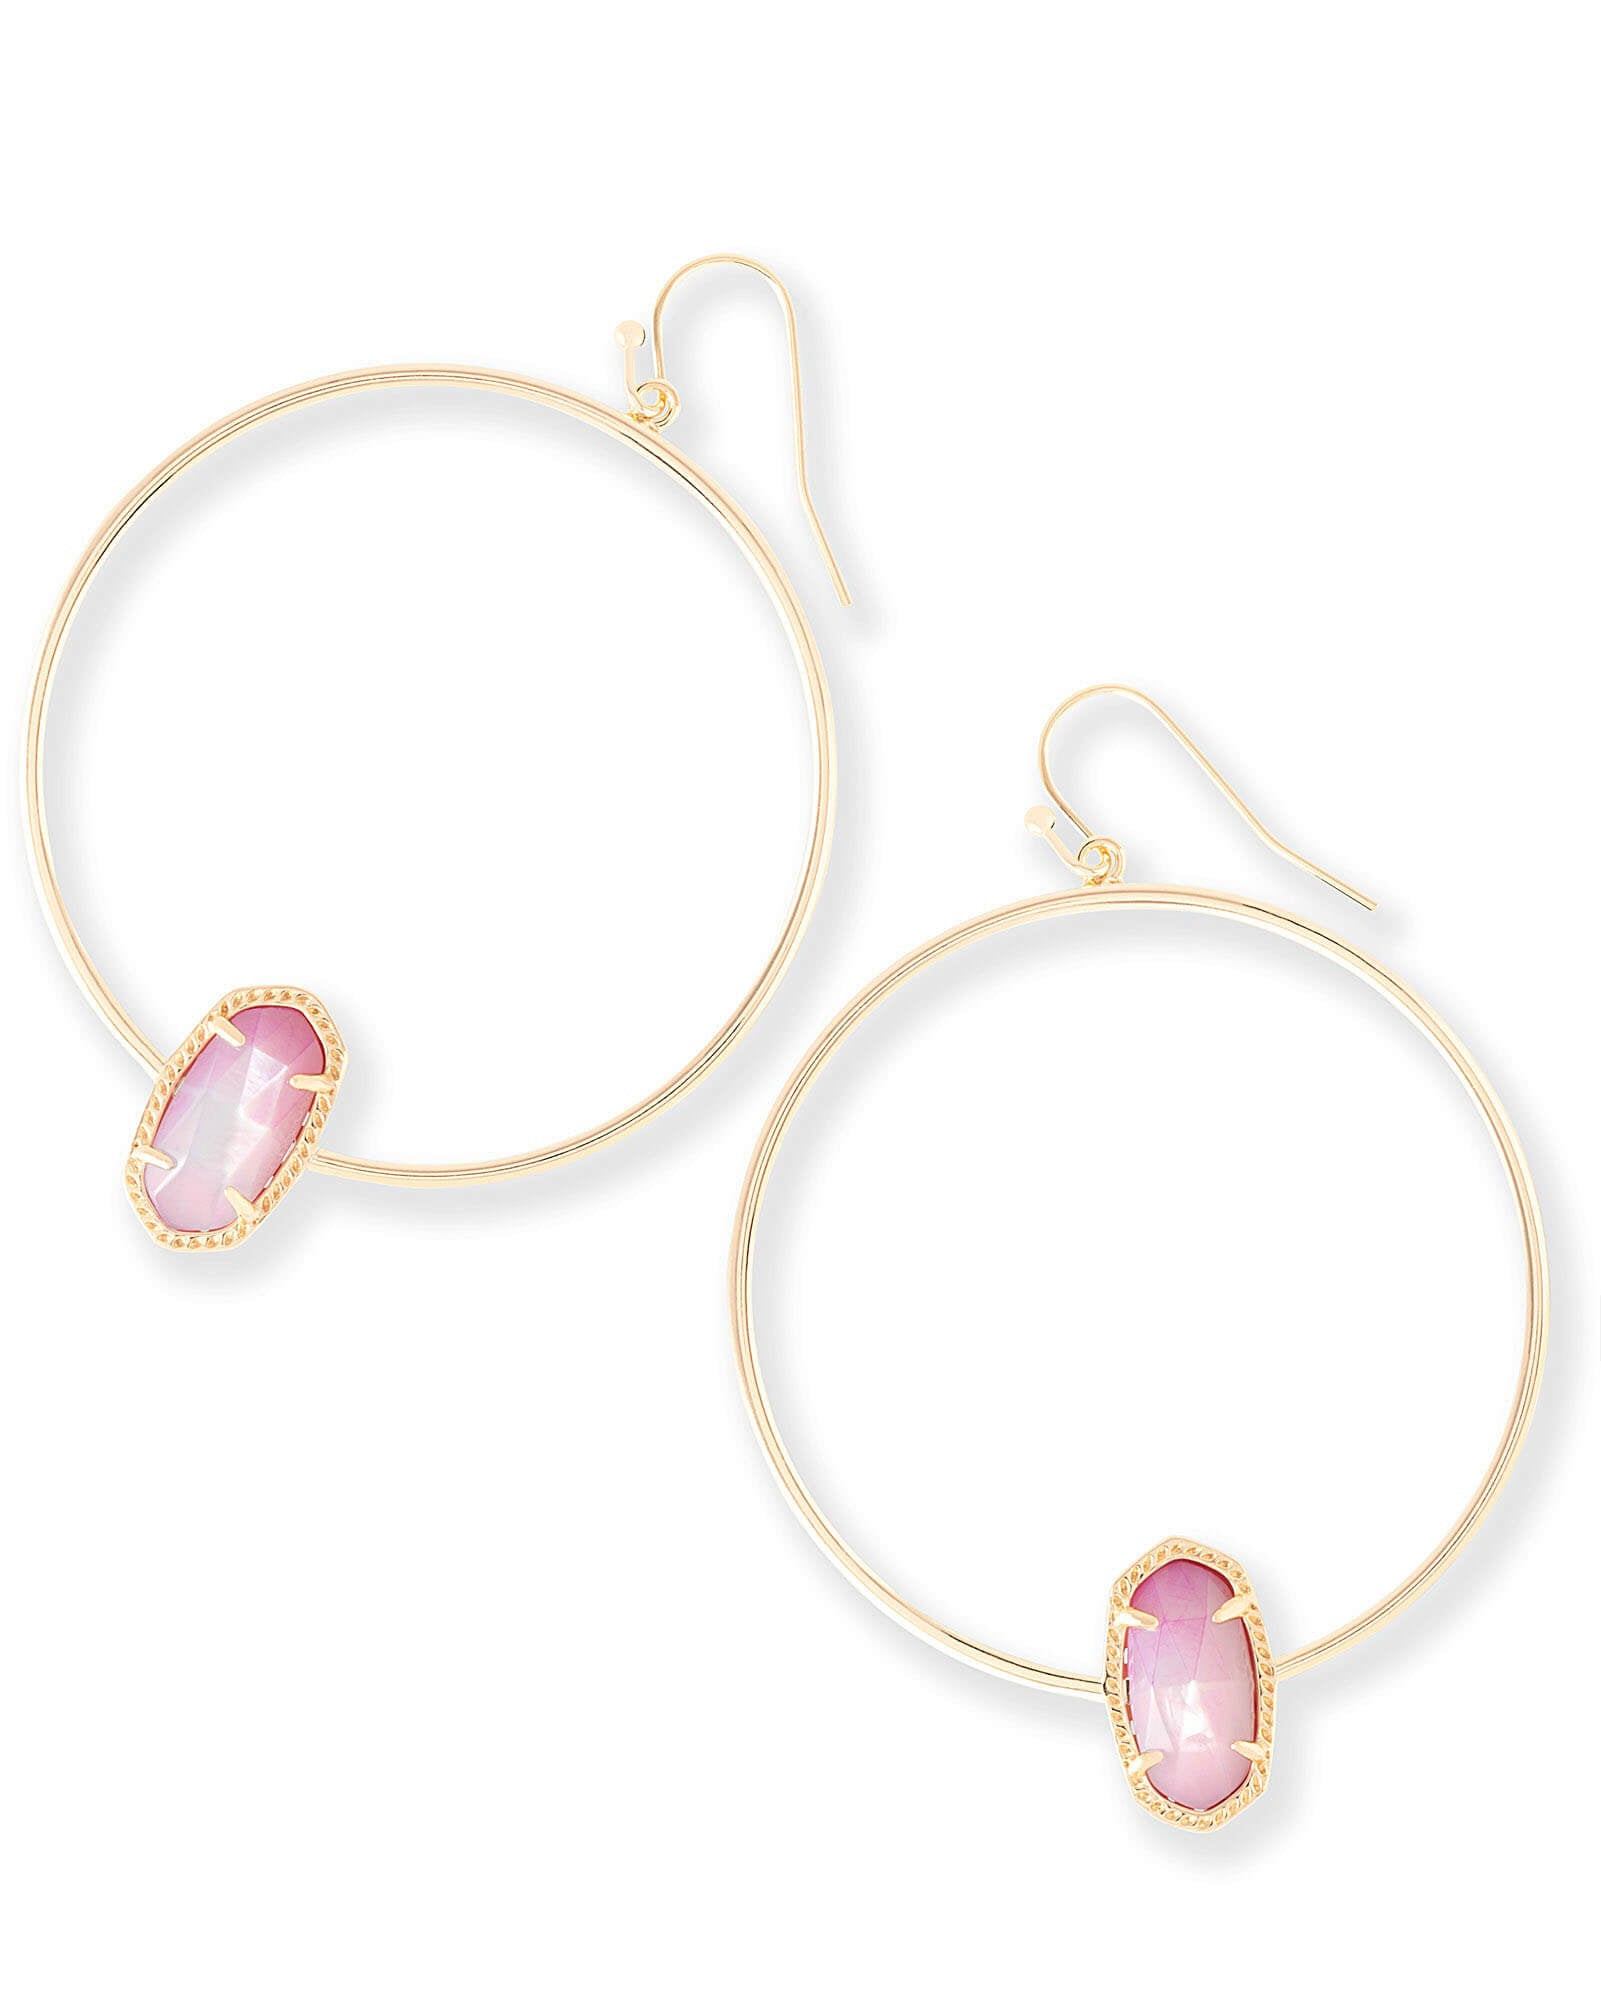 metallic gold s women lyst jewelry product at previously gallery in ippolita fifth medium sold avenue jewellery earrings hoop chunky saks